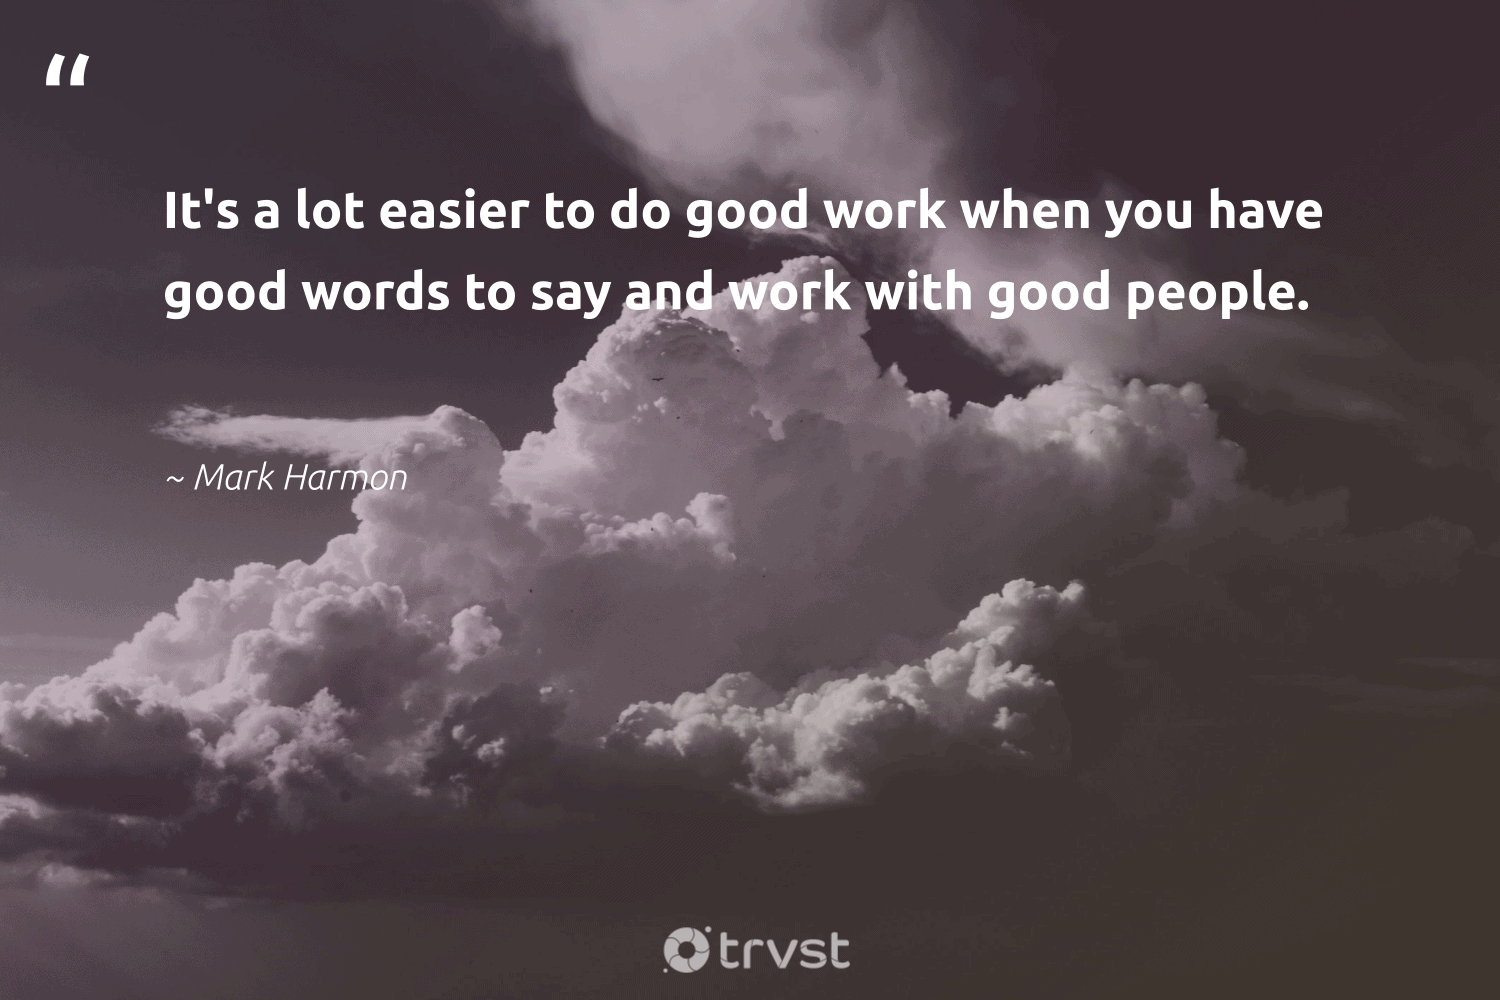 """It's a lot easier to do good work when you have good words to say and work with good people.""  - Mark Harmon #trvst #quotes #dogood #givingback #begreat #togetherwecan #dotherightthing #socialgood #nevergiveup #itscooltobekind #socialimpact #giveback"